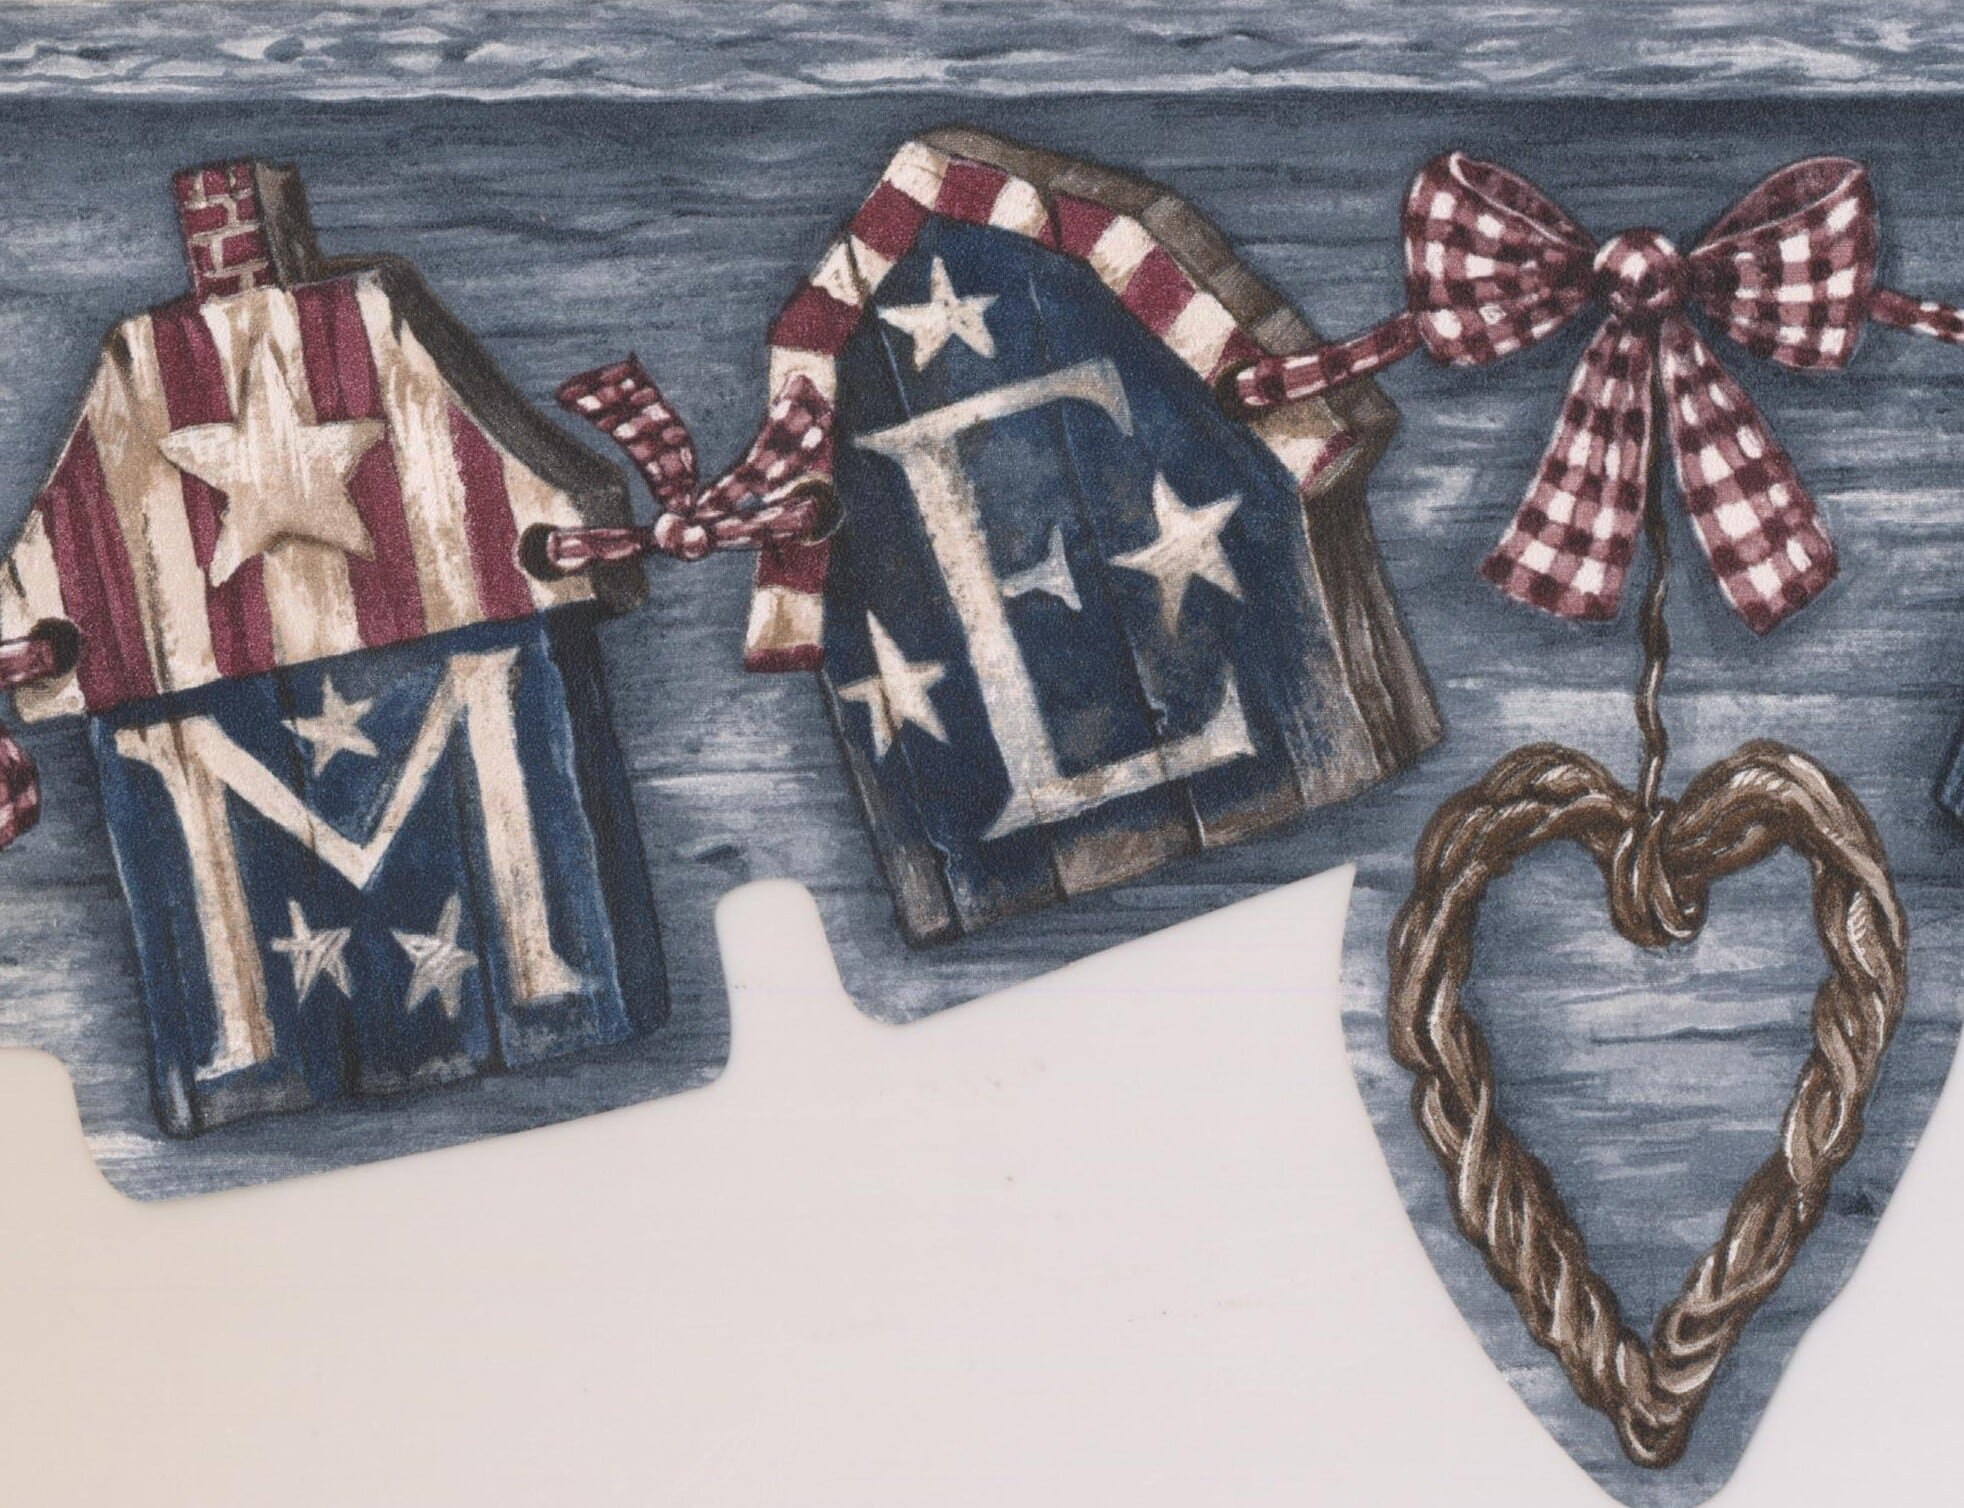 USA American Flags Heart Welcome Vintage Grey Wallpaper Border Retro Design, Roll 15' x 5''